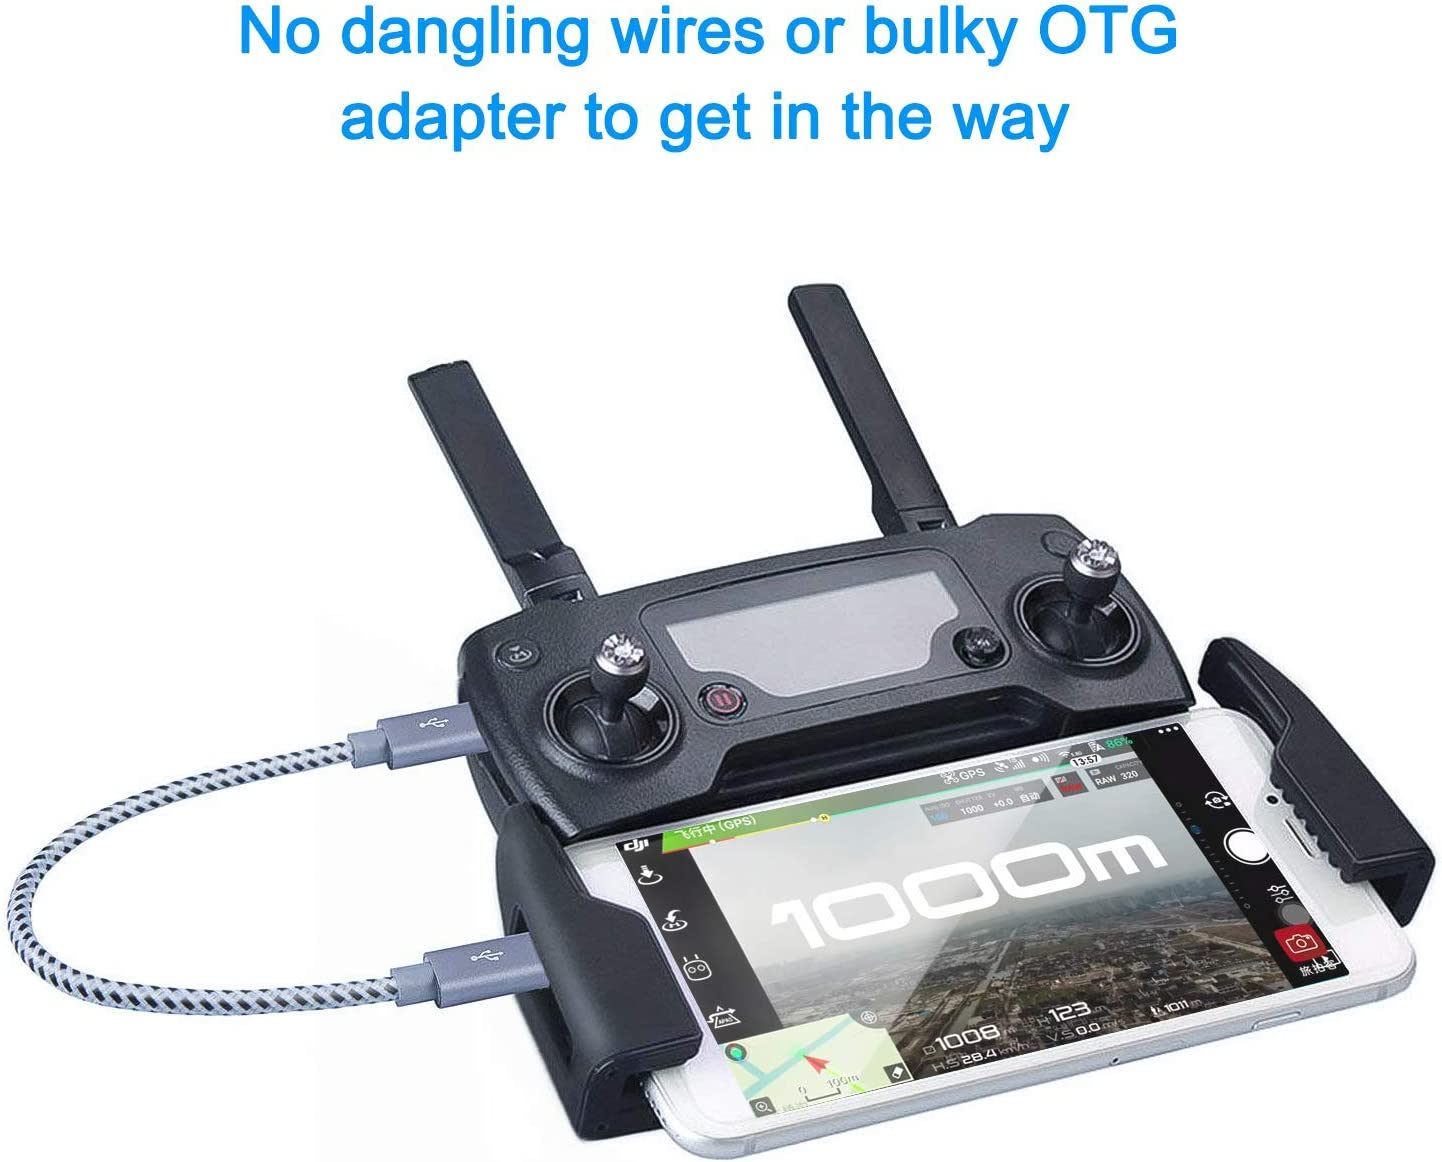 PRO OTG Cable Works for Rio Mini USB Right Angle Cable Connects You to Any Compatible USB Device with MicroUSB